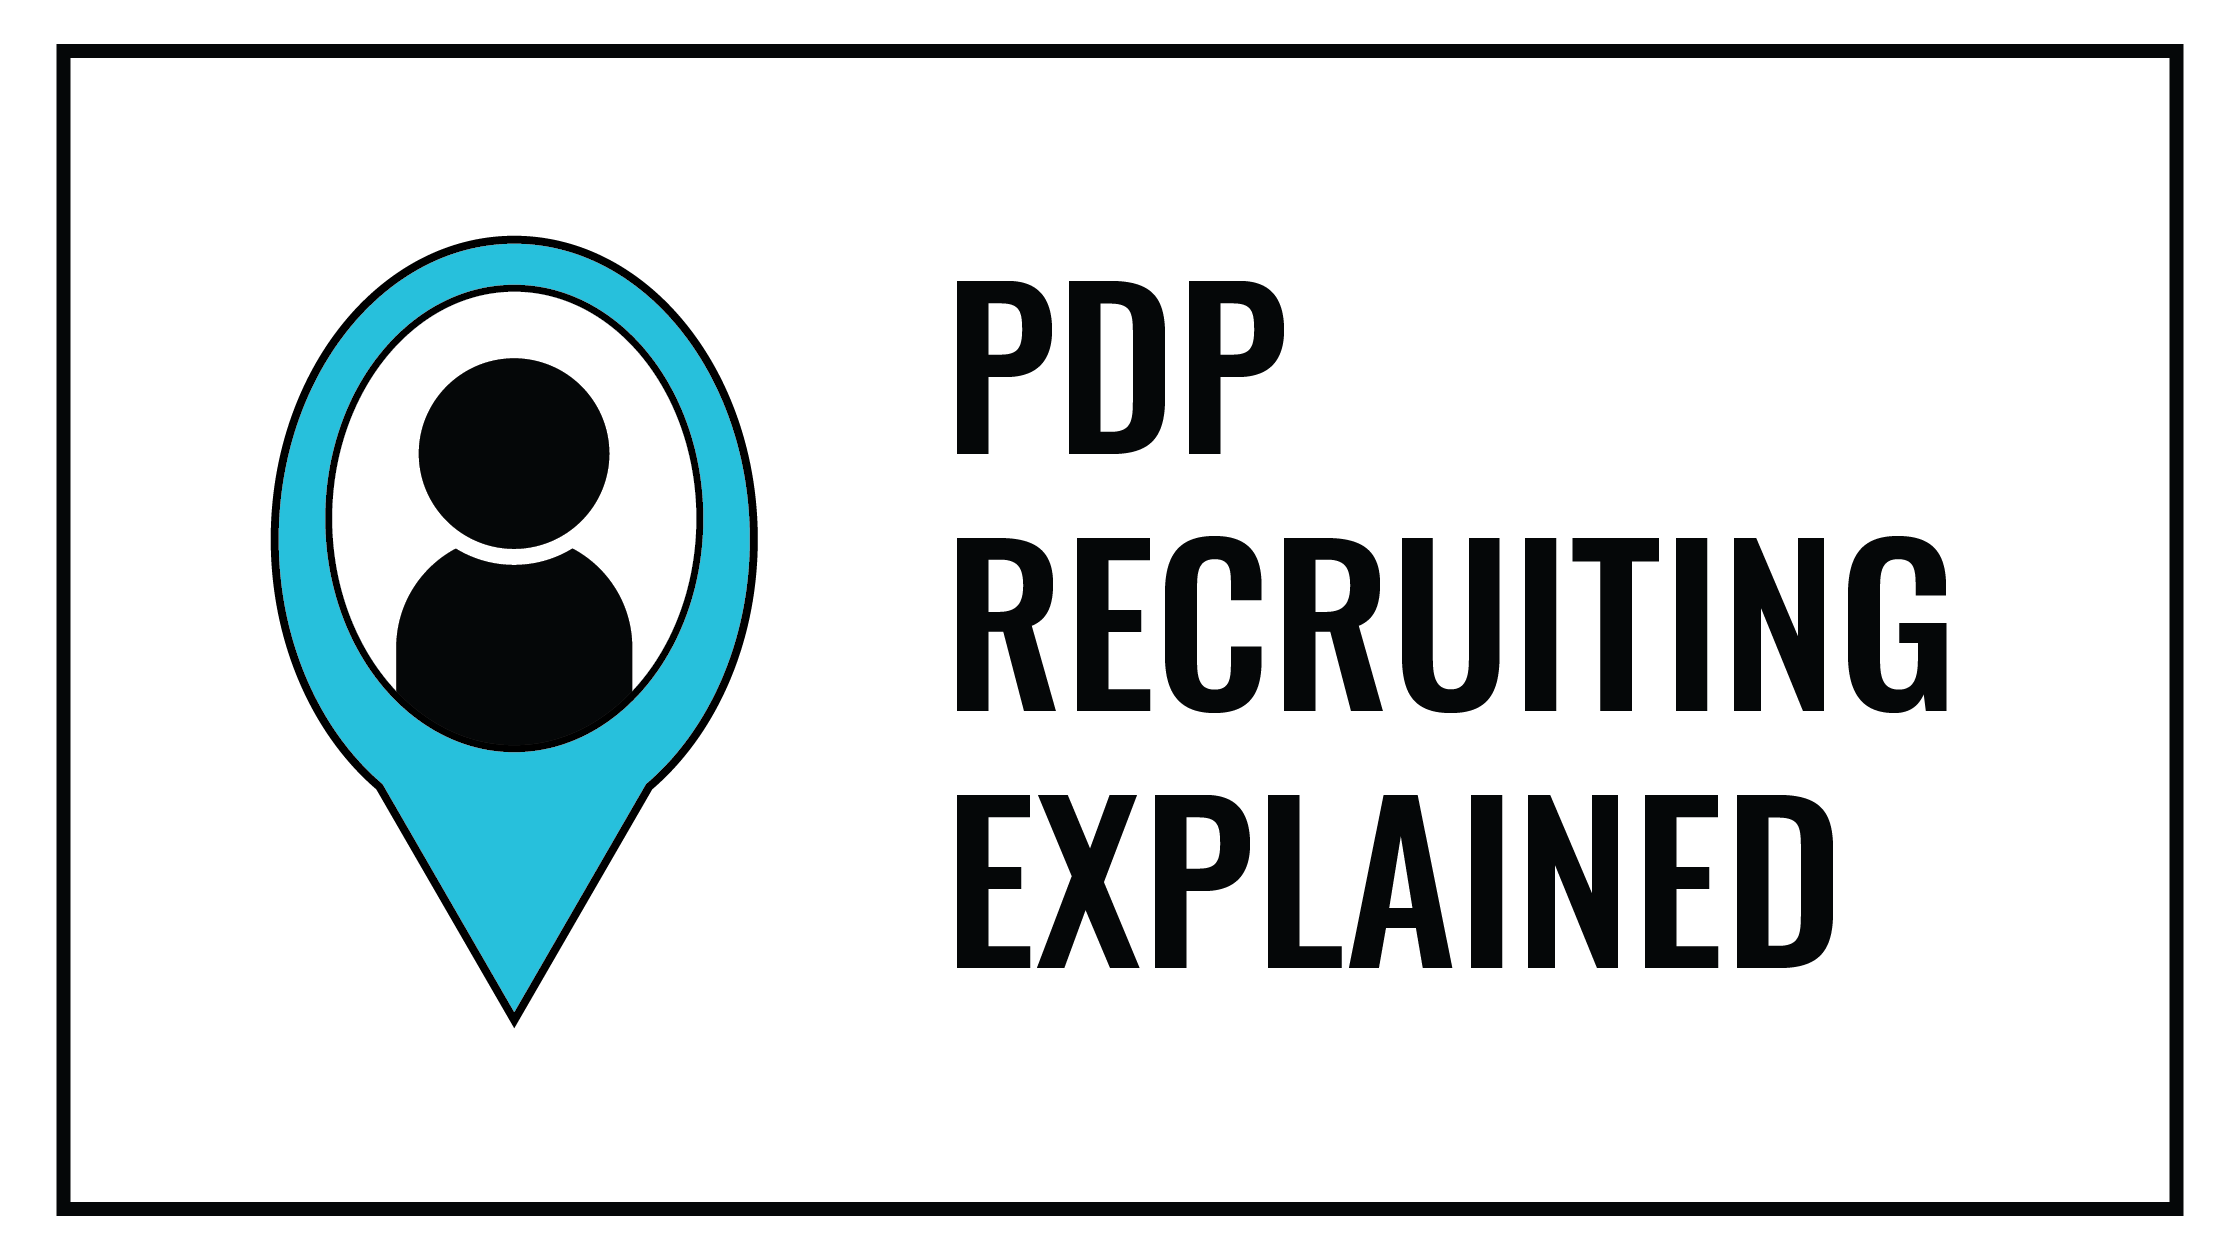 PDP Recruiting Explained